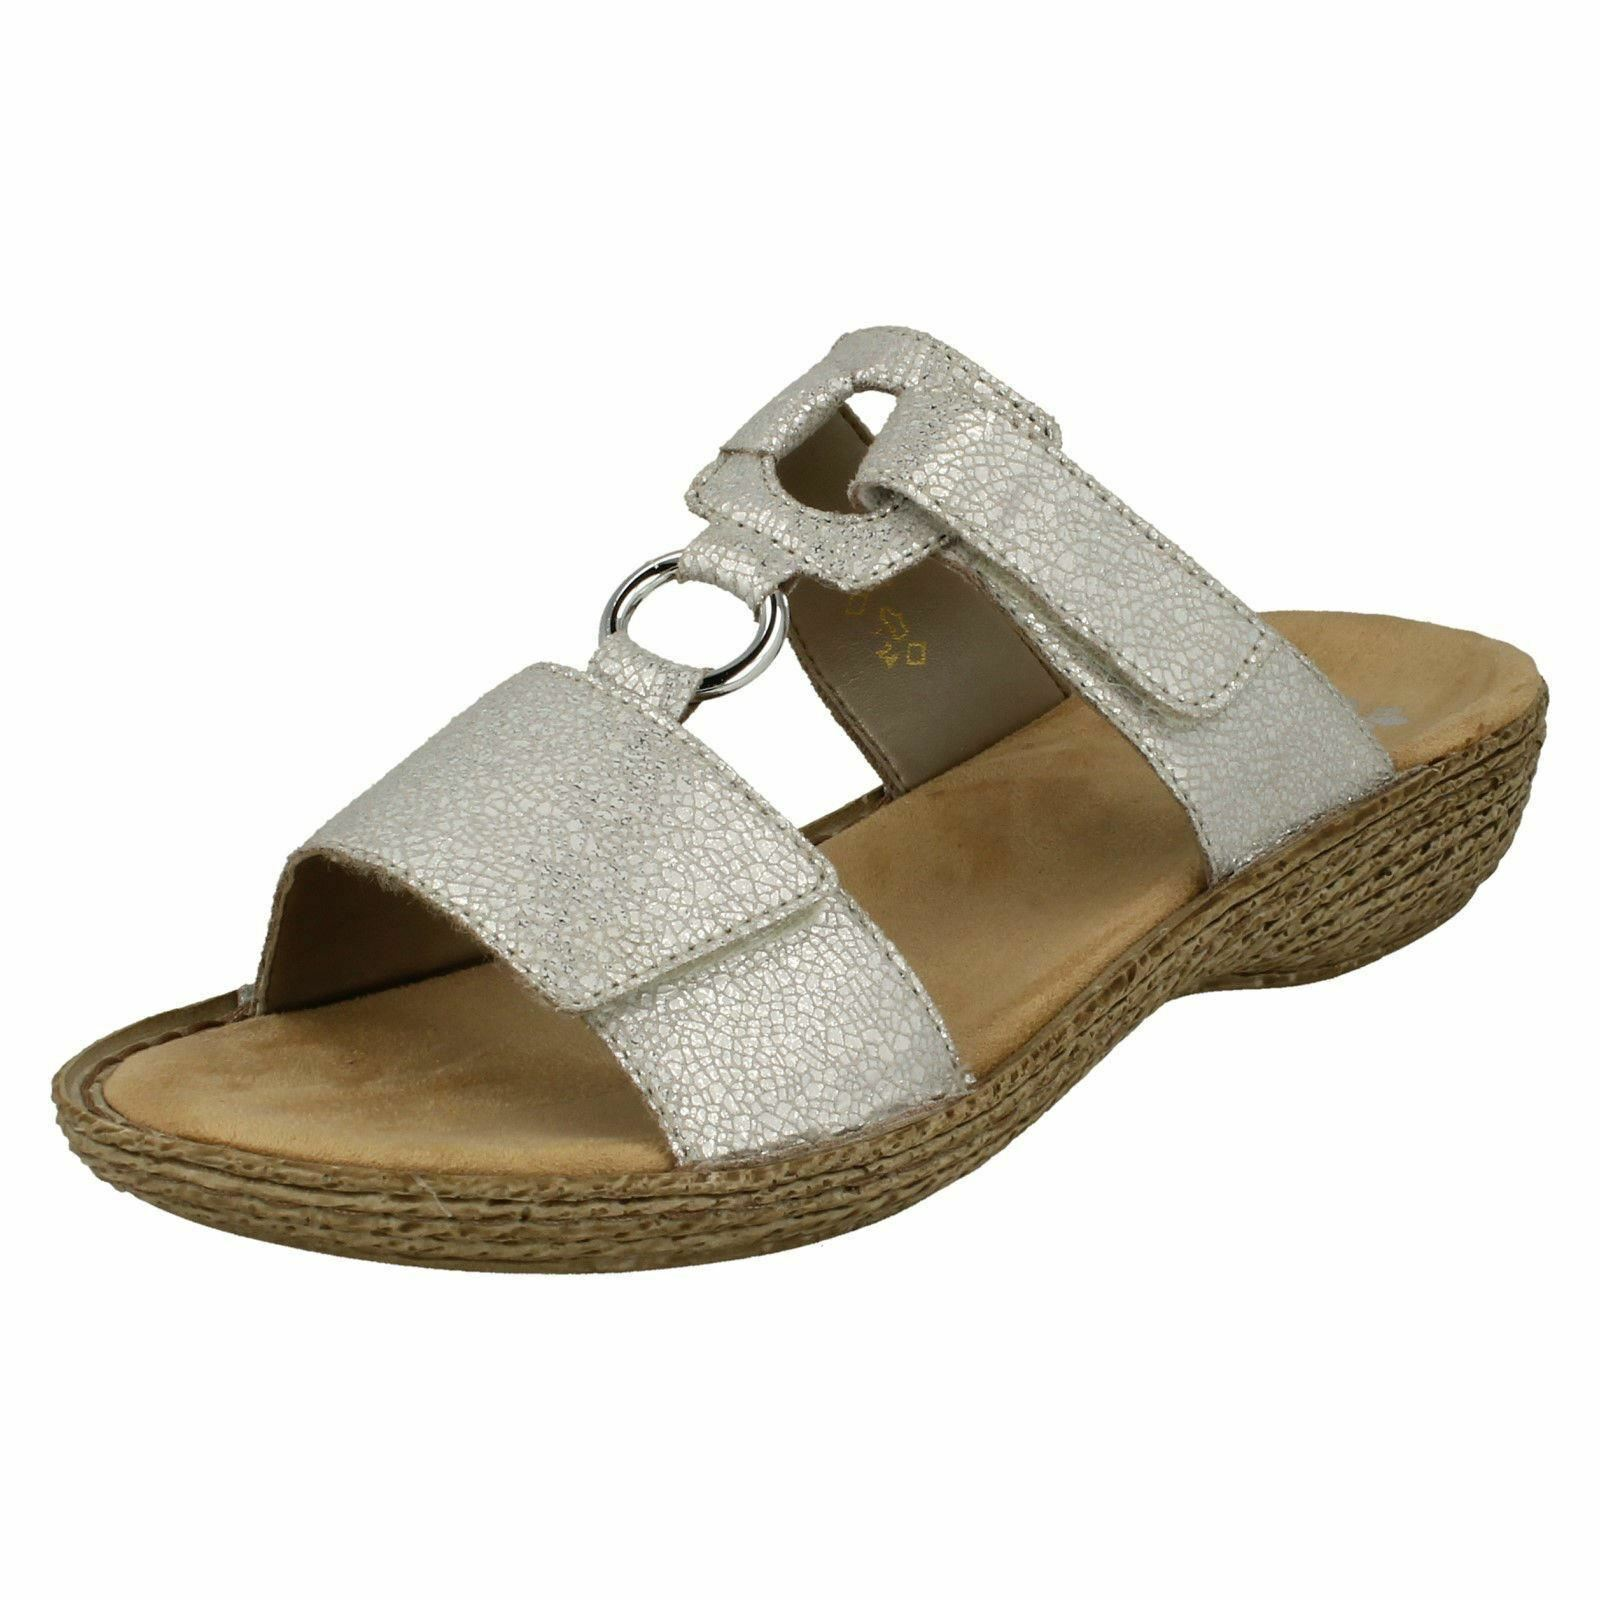 Ladies Rieker 658P9 Synthetic Strappy Mule Sandals